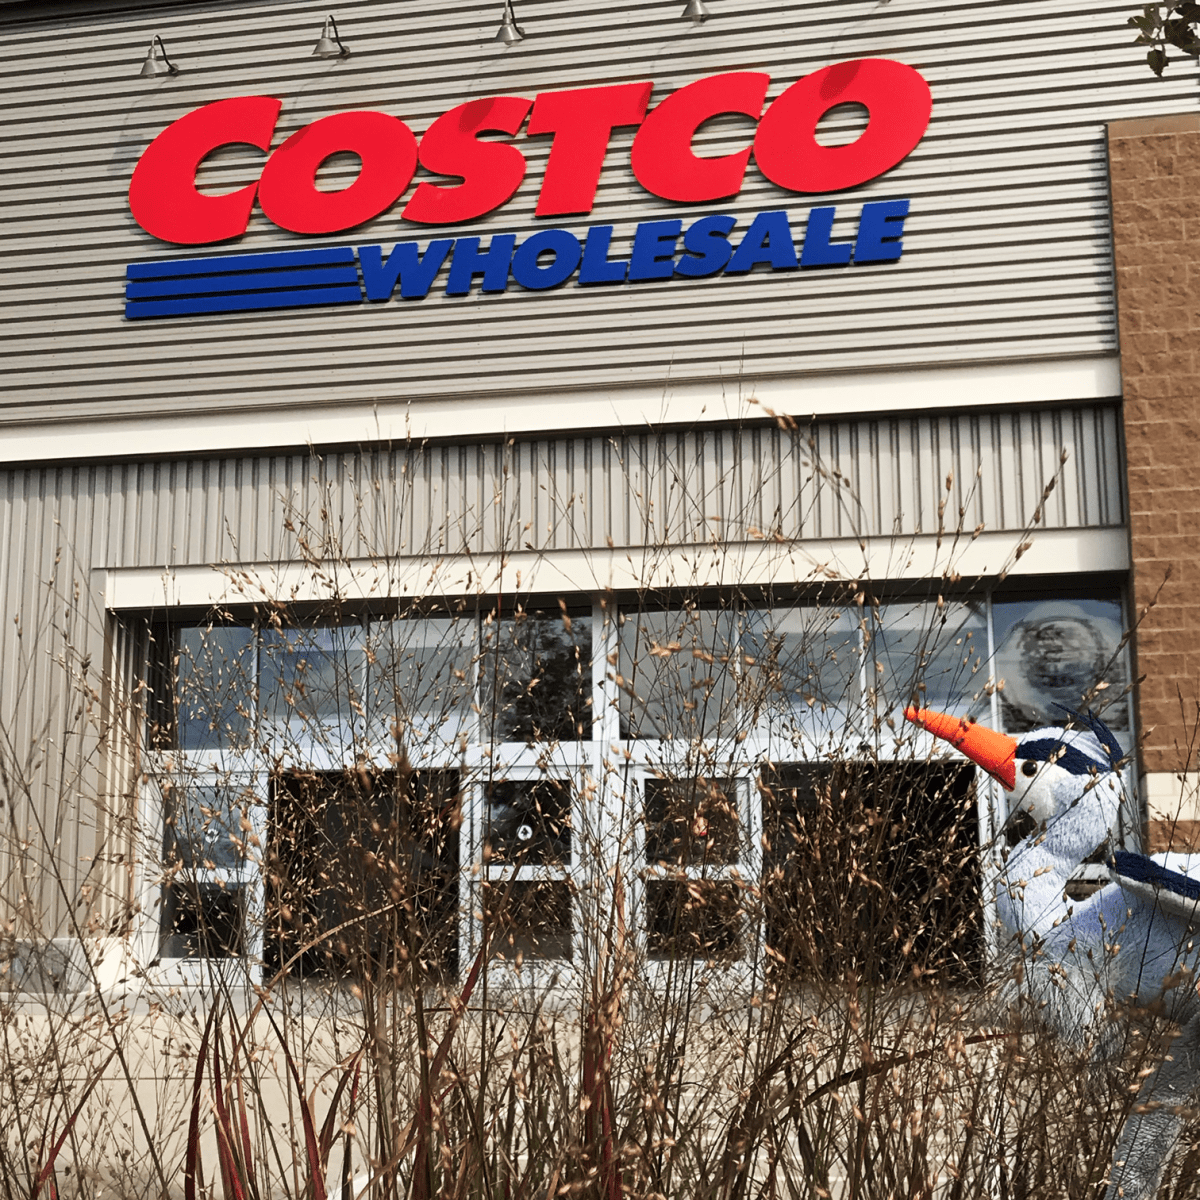 BG visits costco